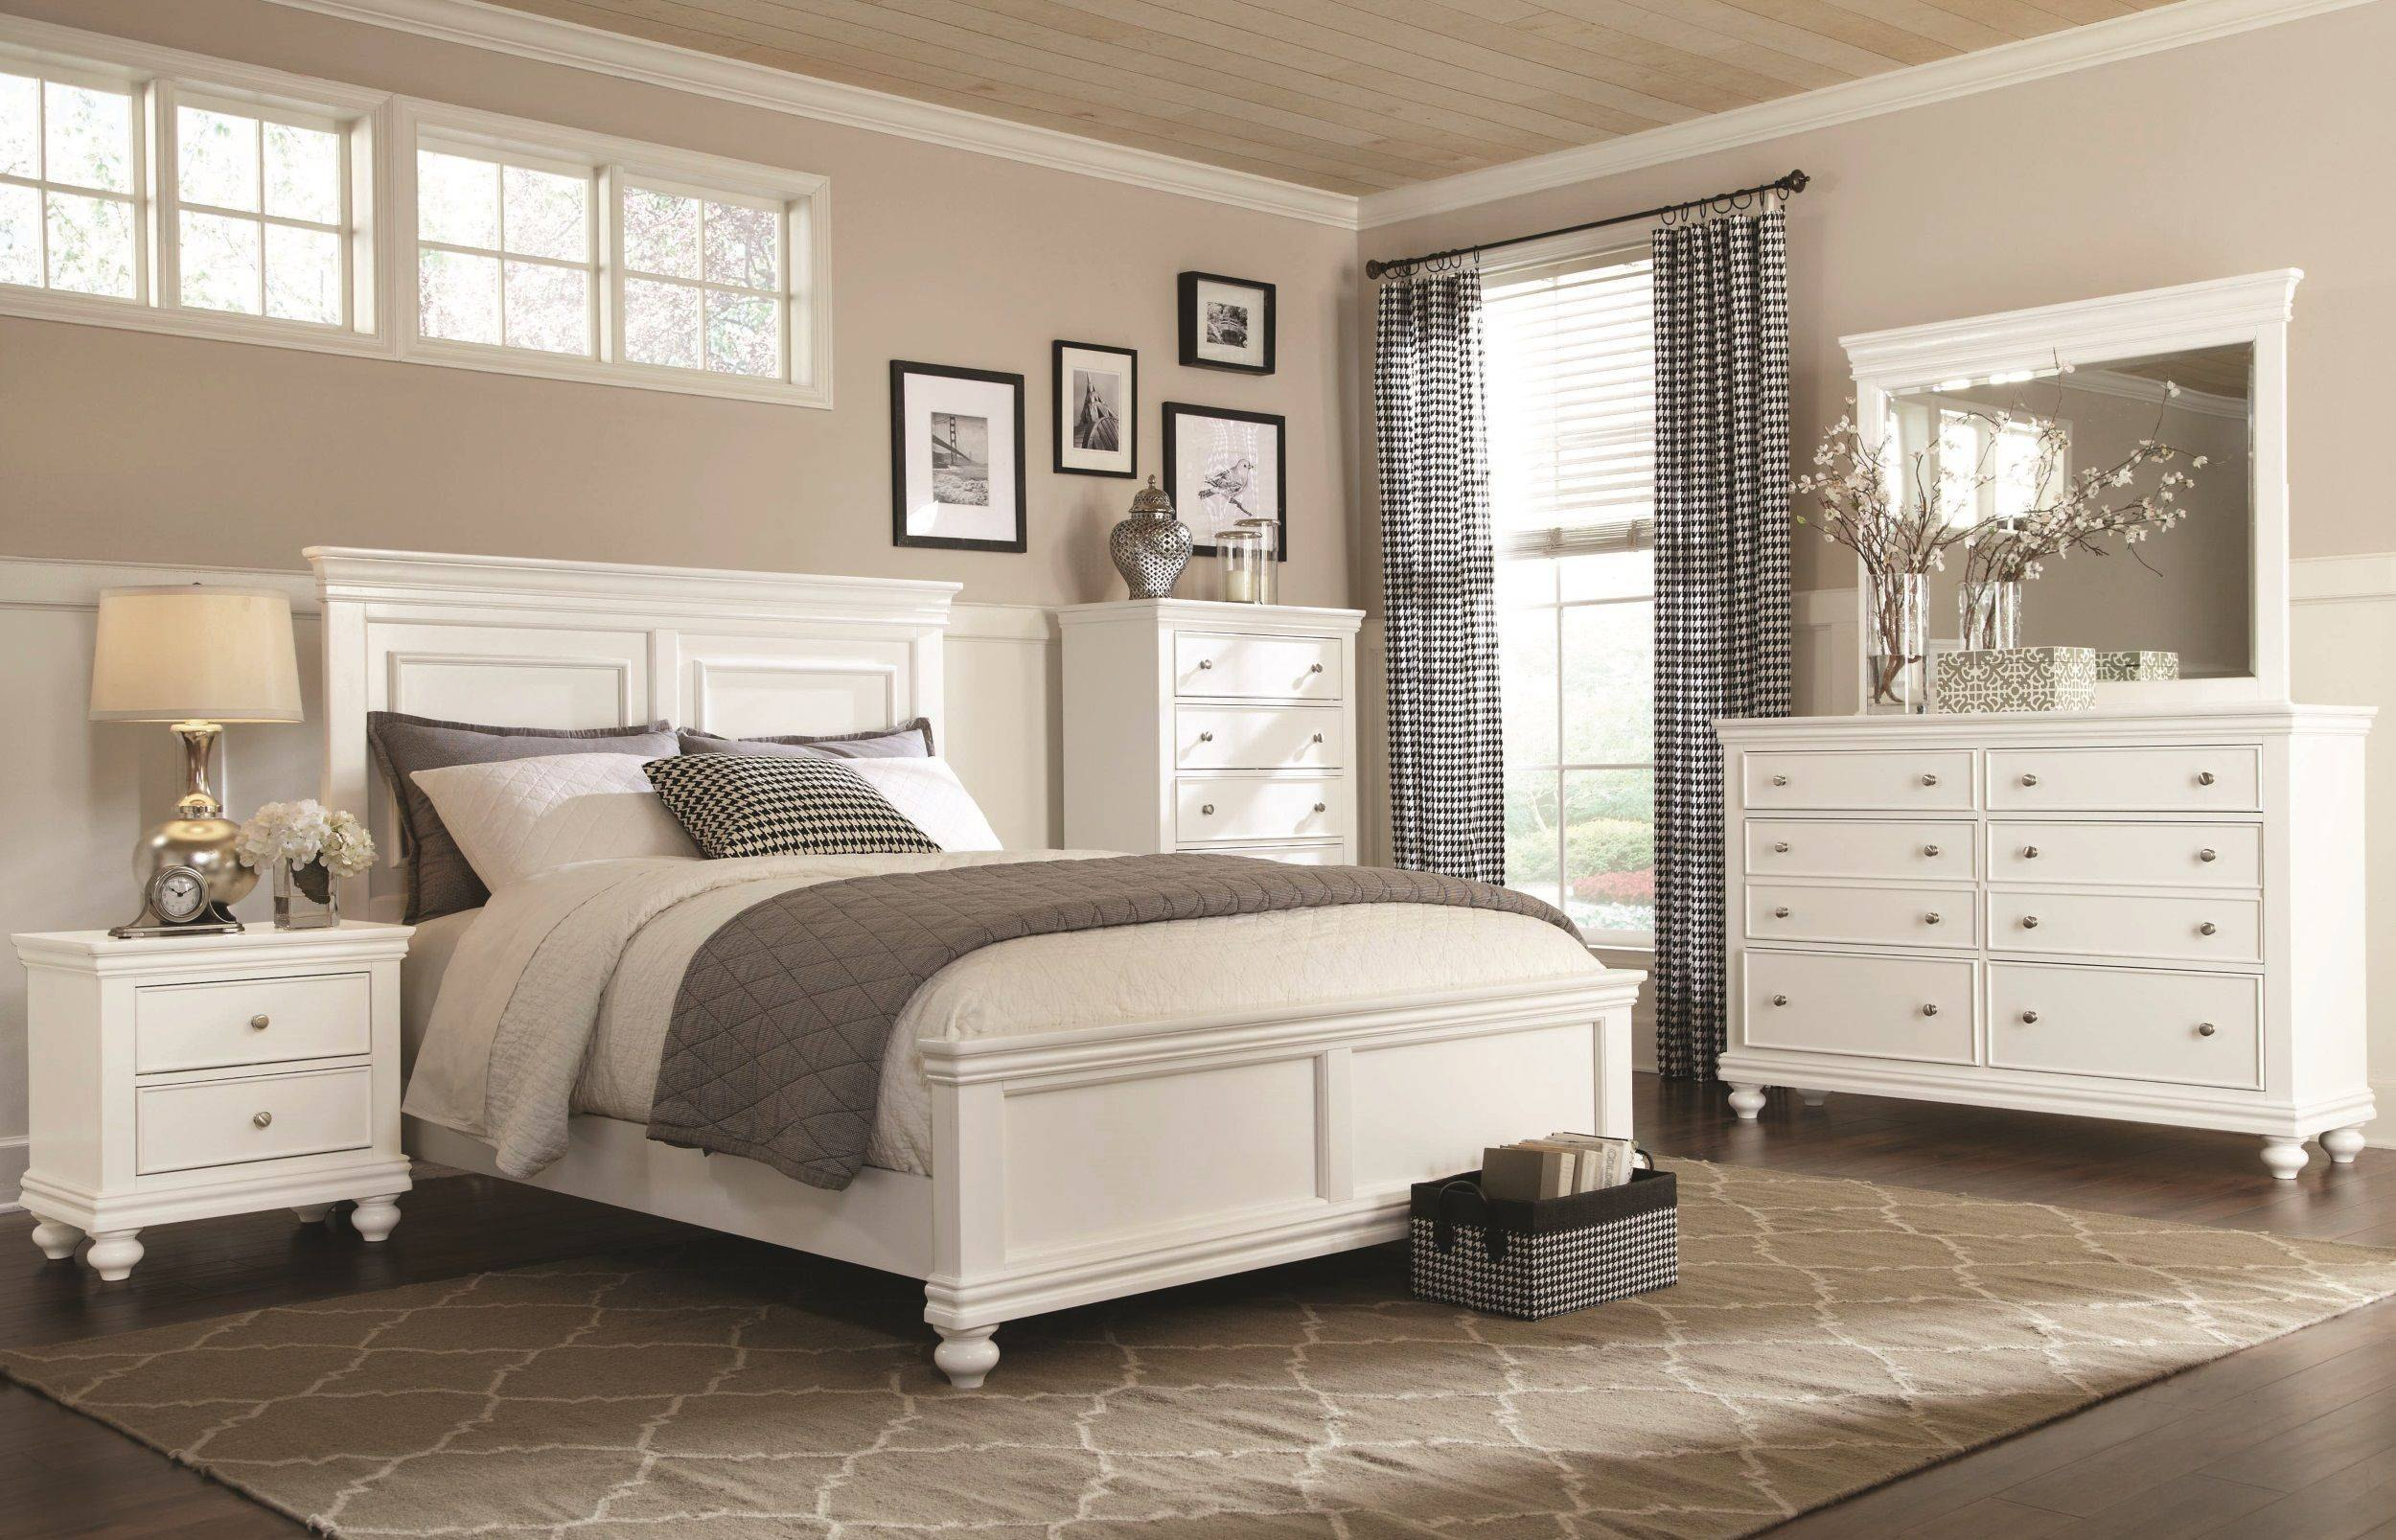 Cheap White Bedroom Furniture Sets Beautiful Bedroom Ideas C